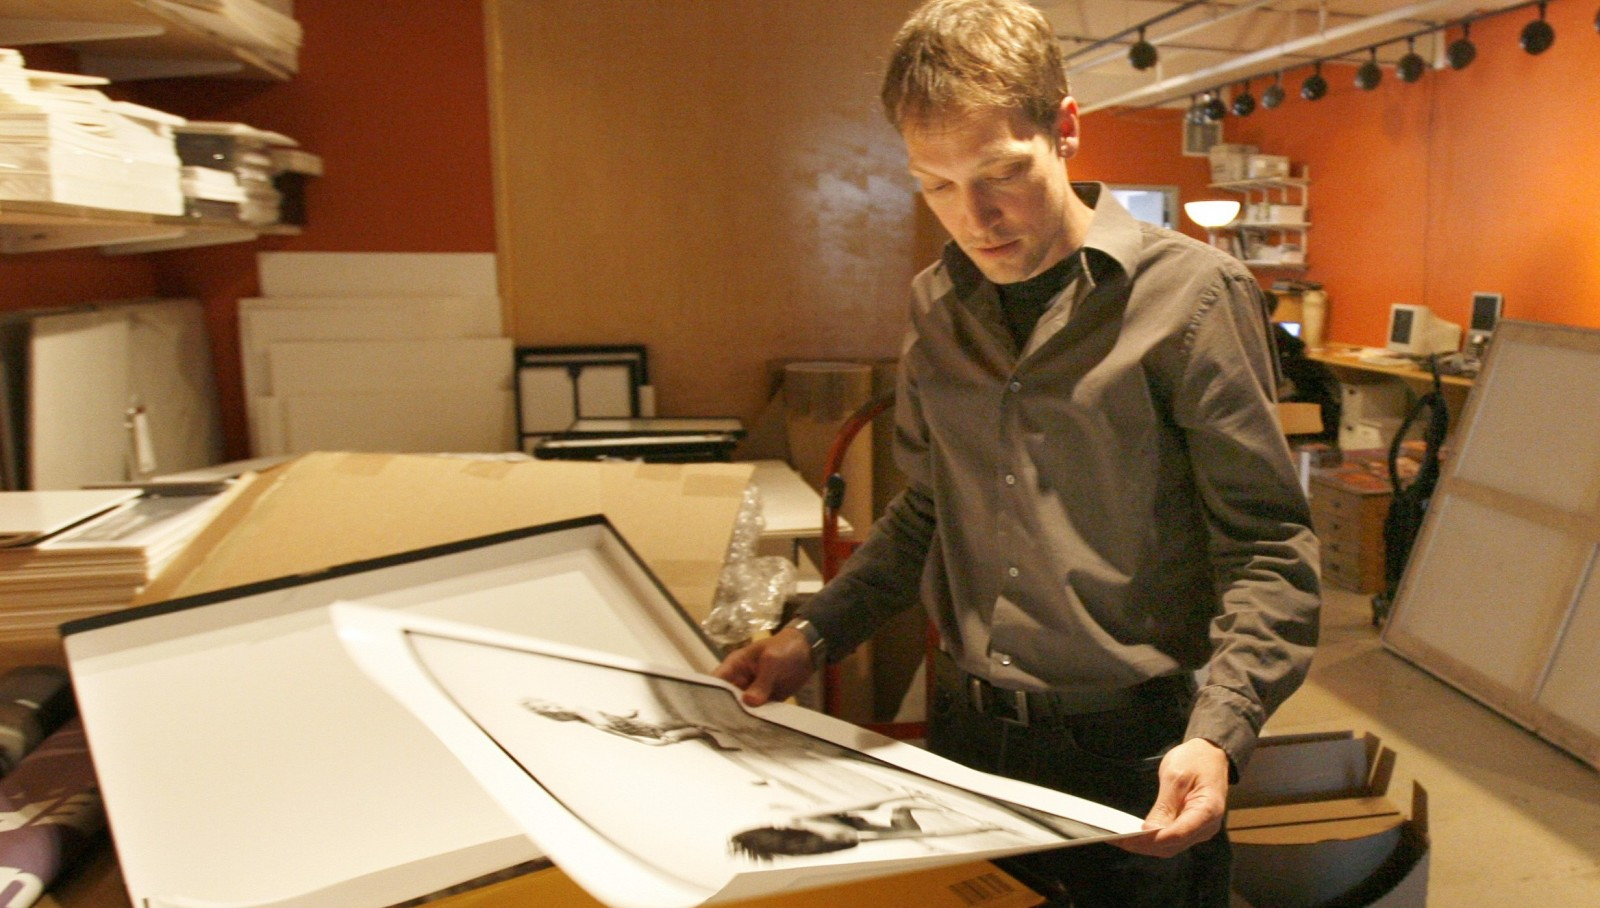 Sean Donaher, shown here in 2007, has been reinstated as director of CEPA Gallery.